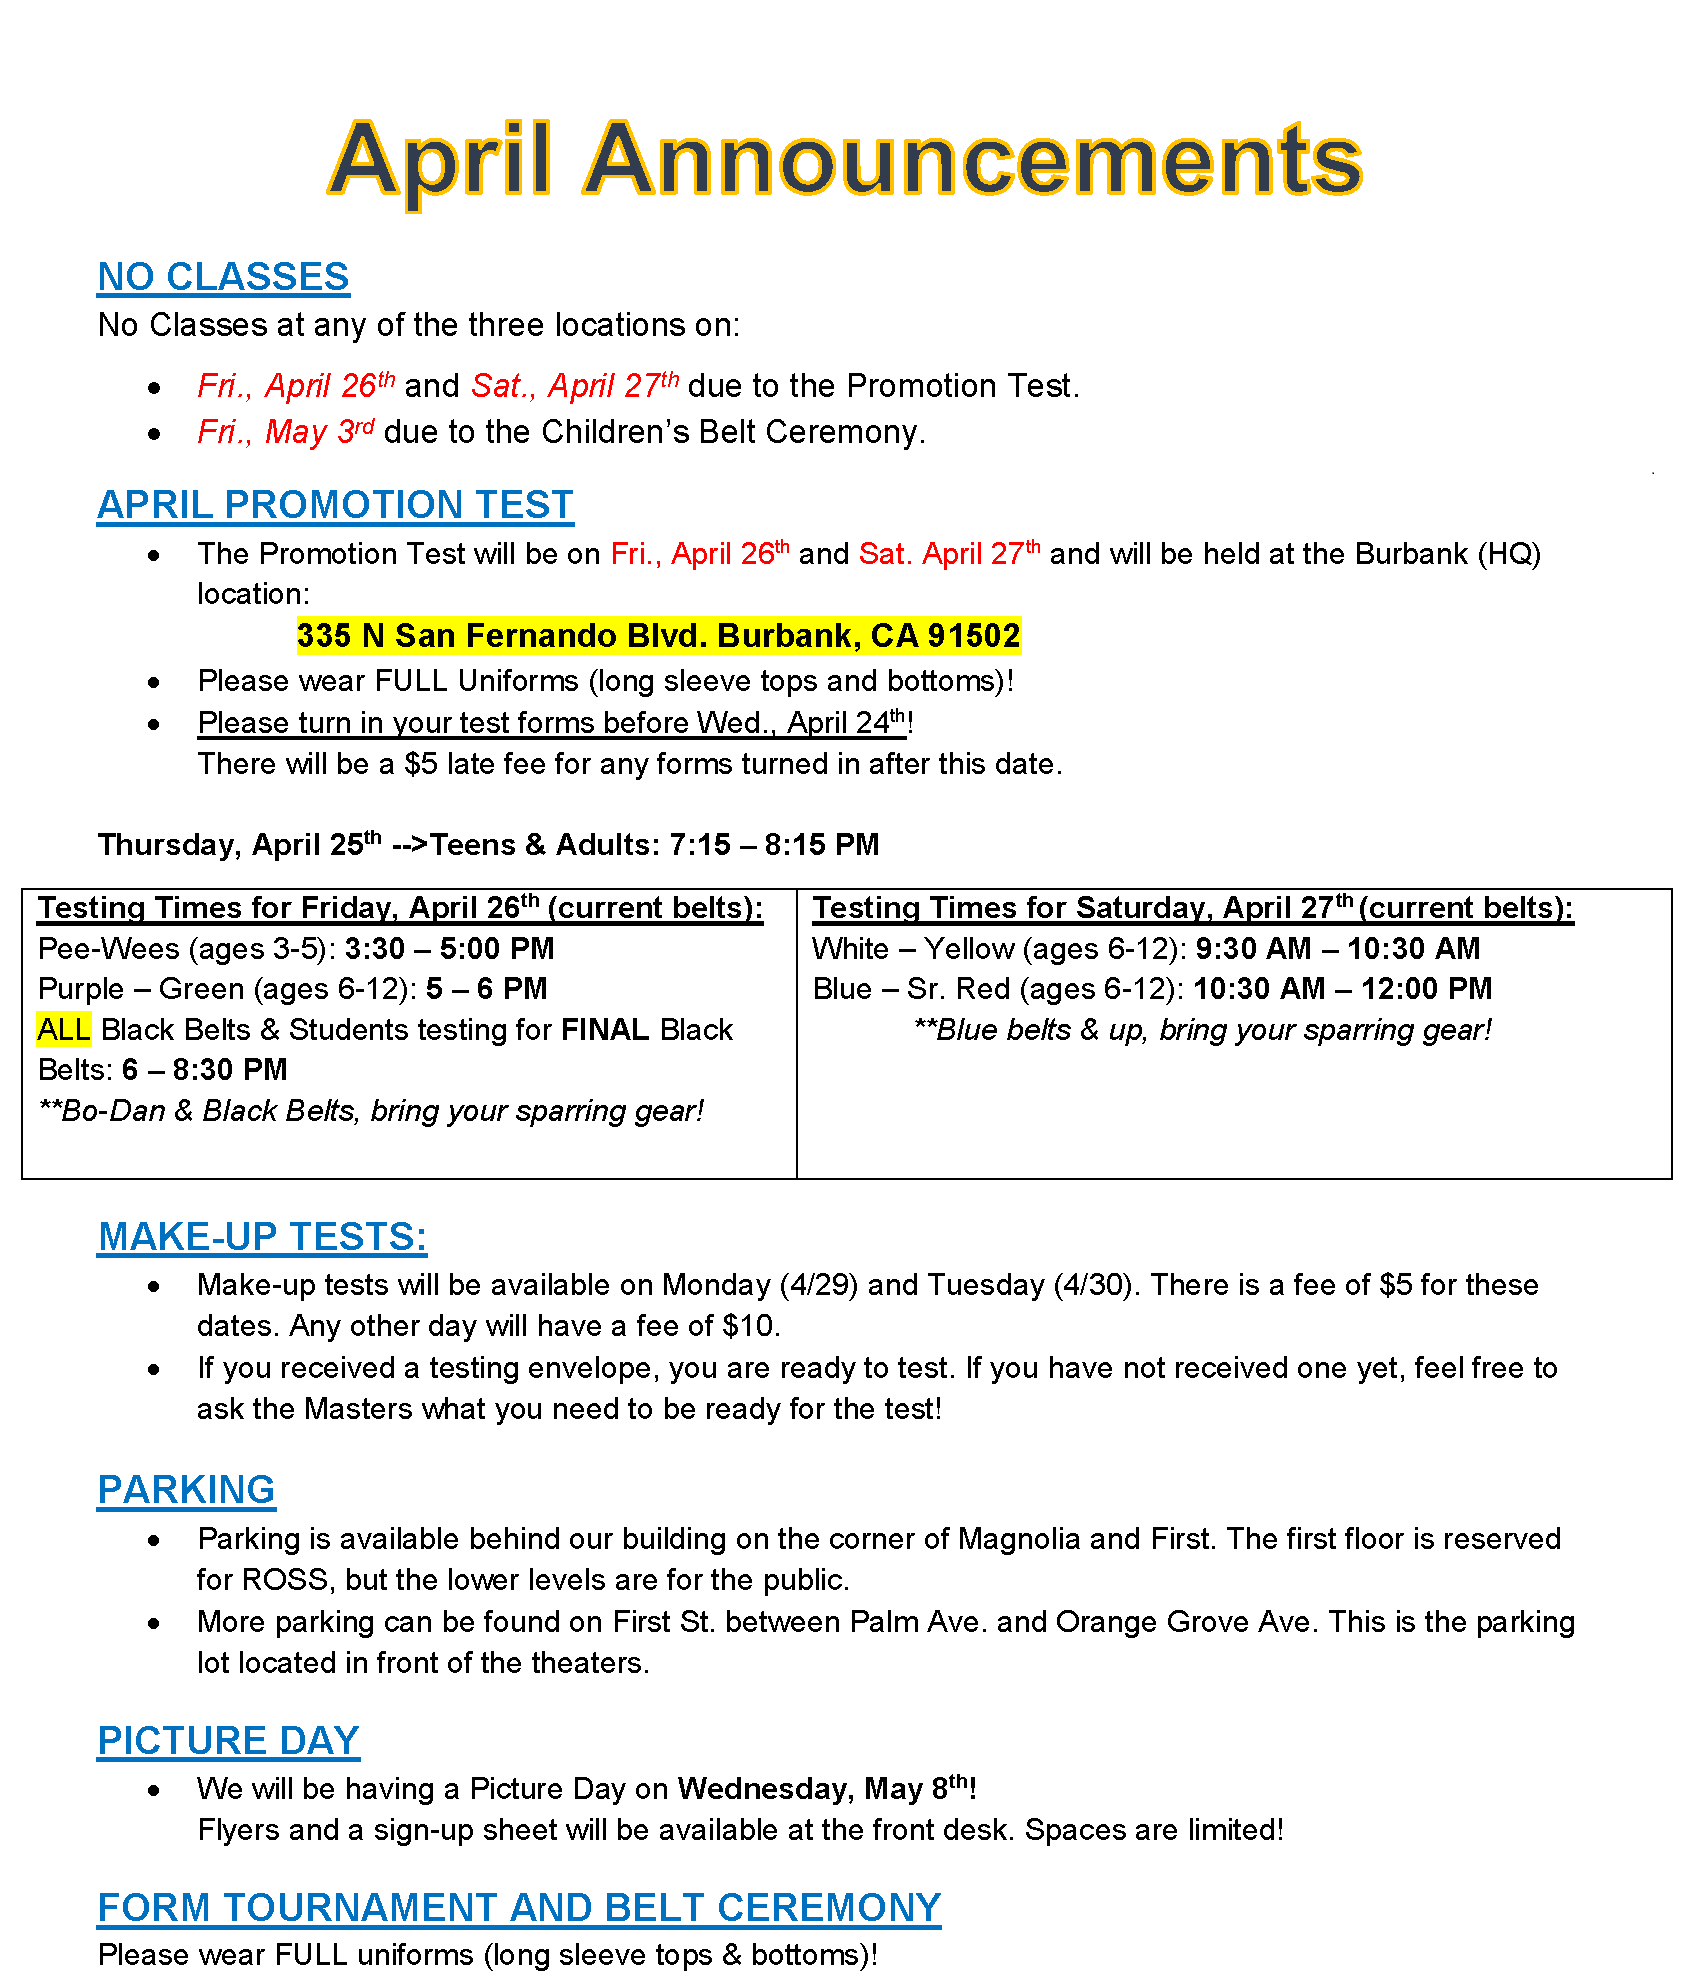 April Announcements_Page_1.png